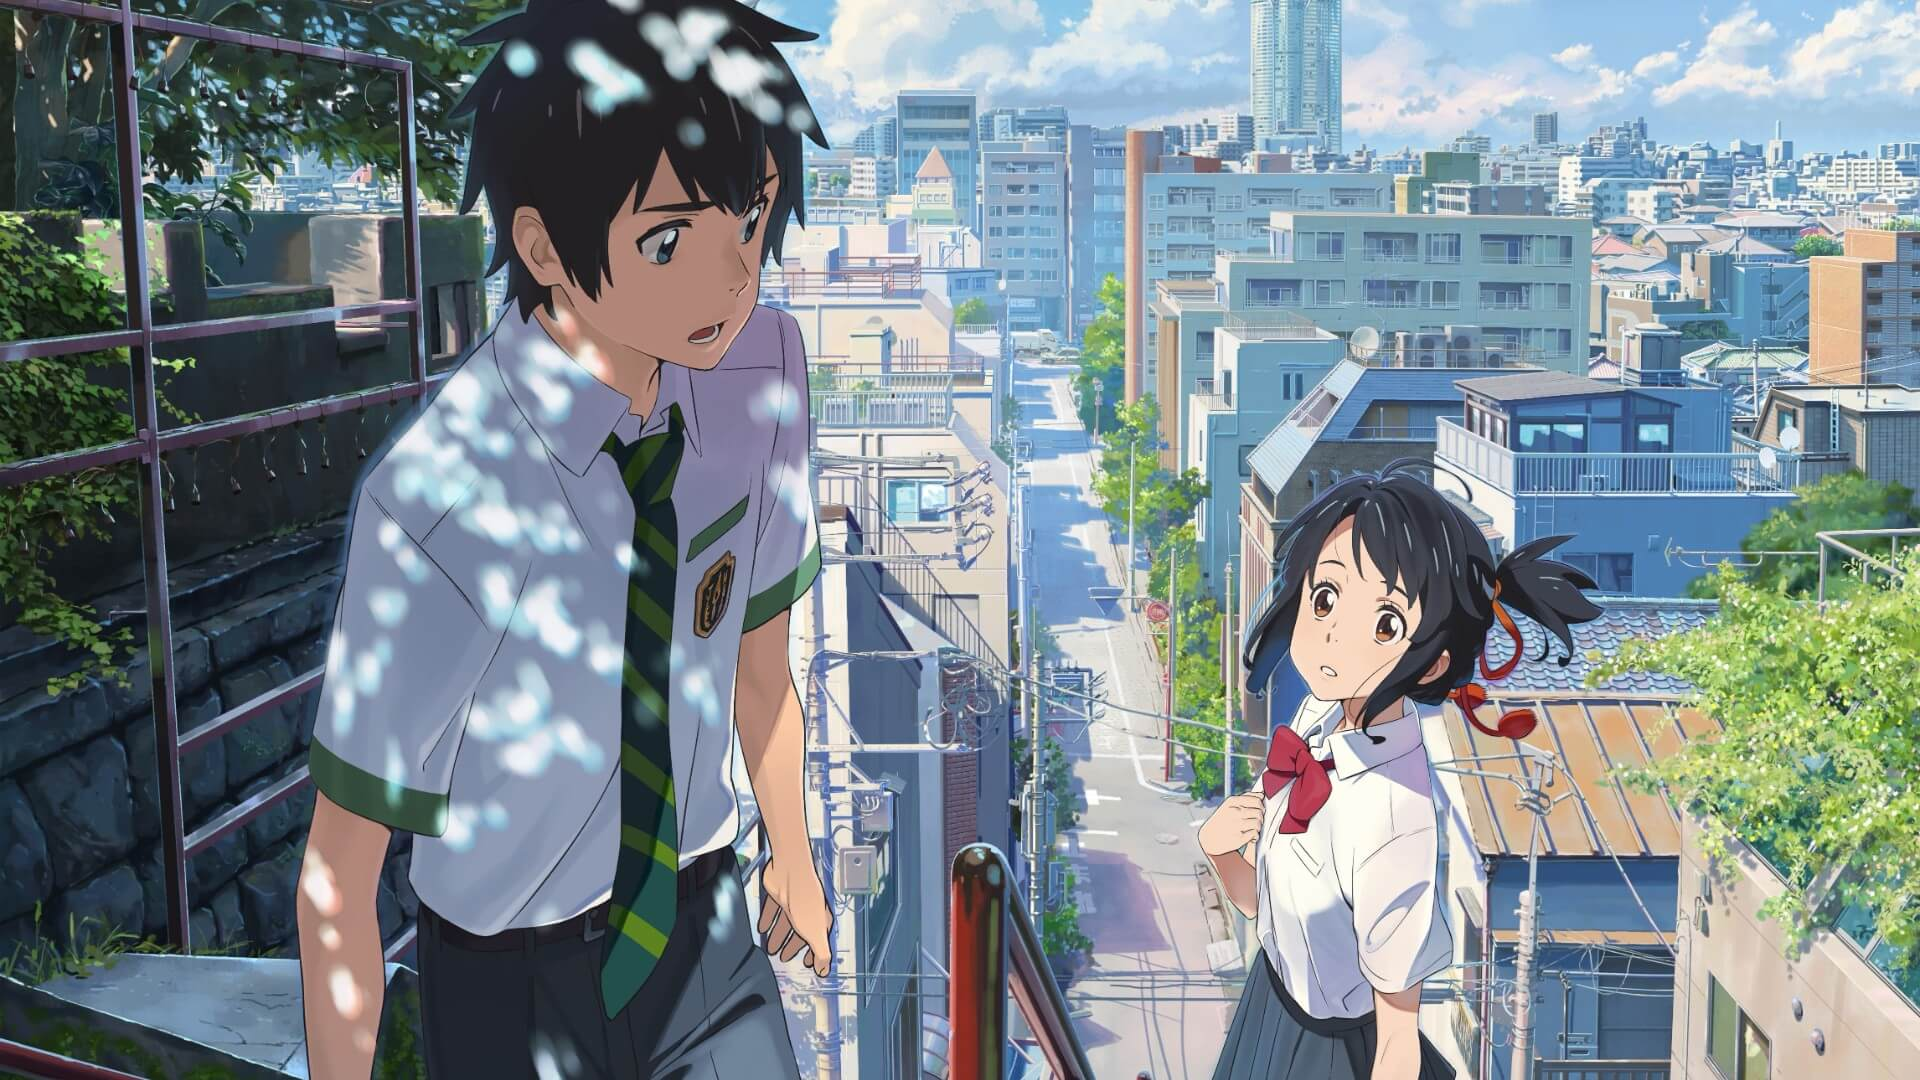 Anime Film Your Name is Getting a Live-Action Remake